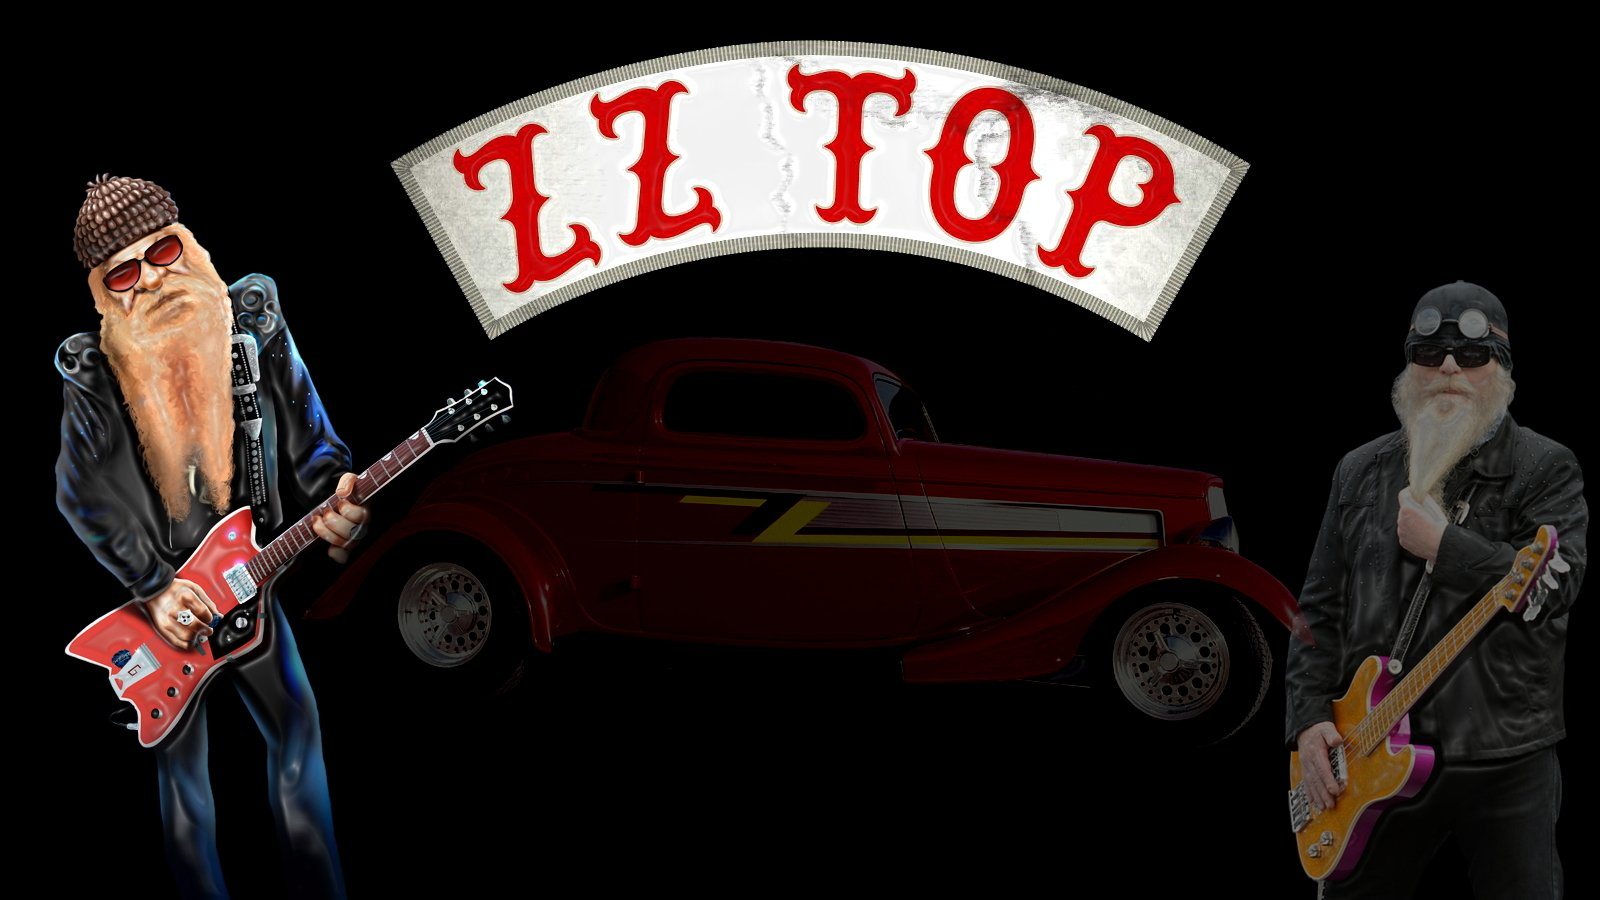 Zz top iphone wallpaper - Hd Wallpaper Background Id 277171